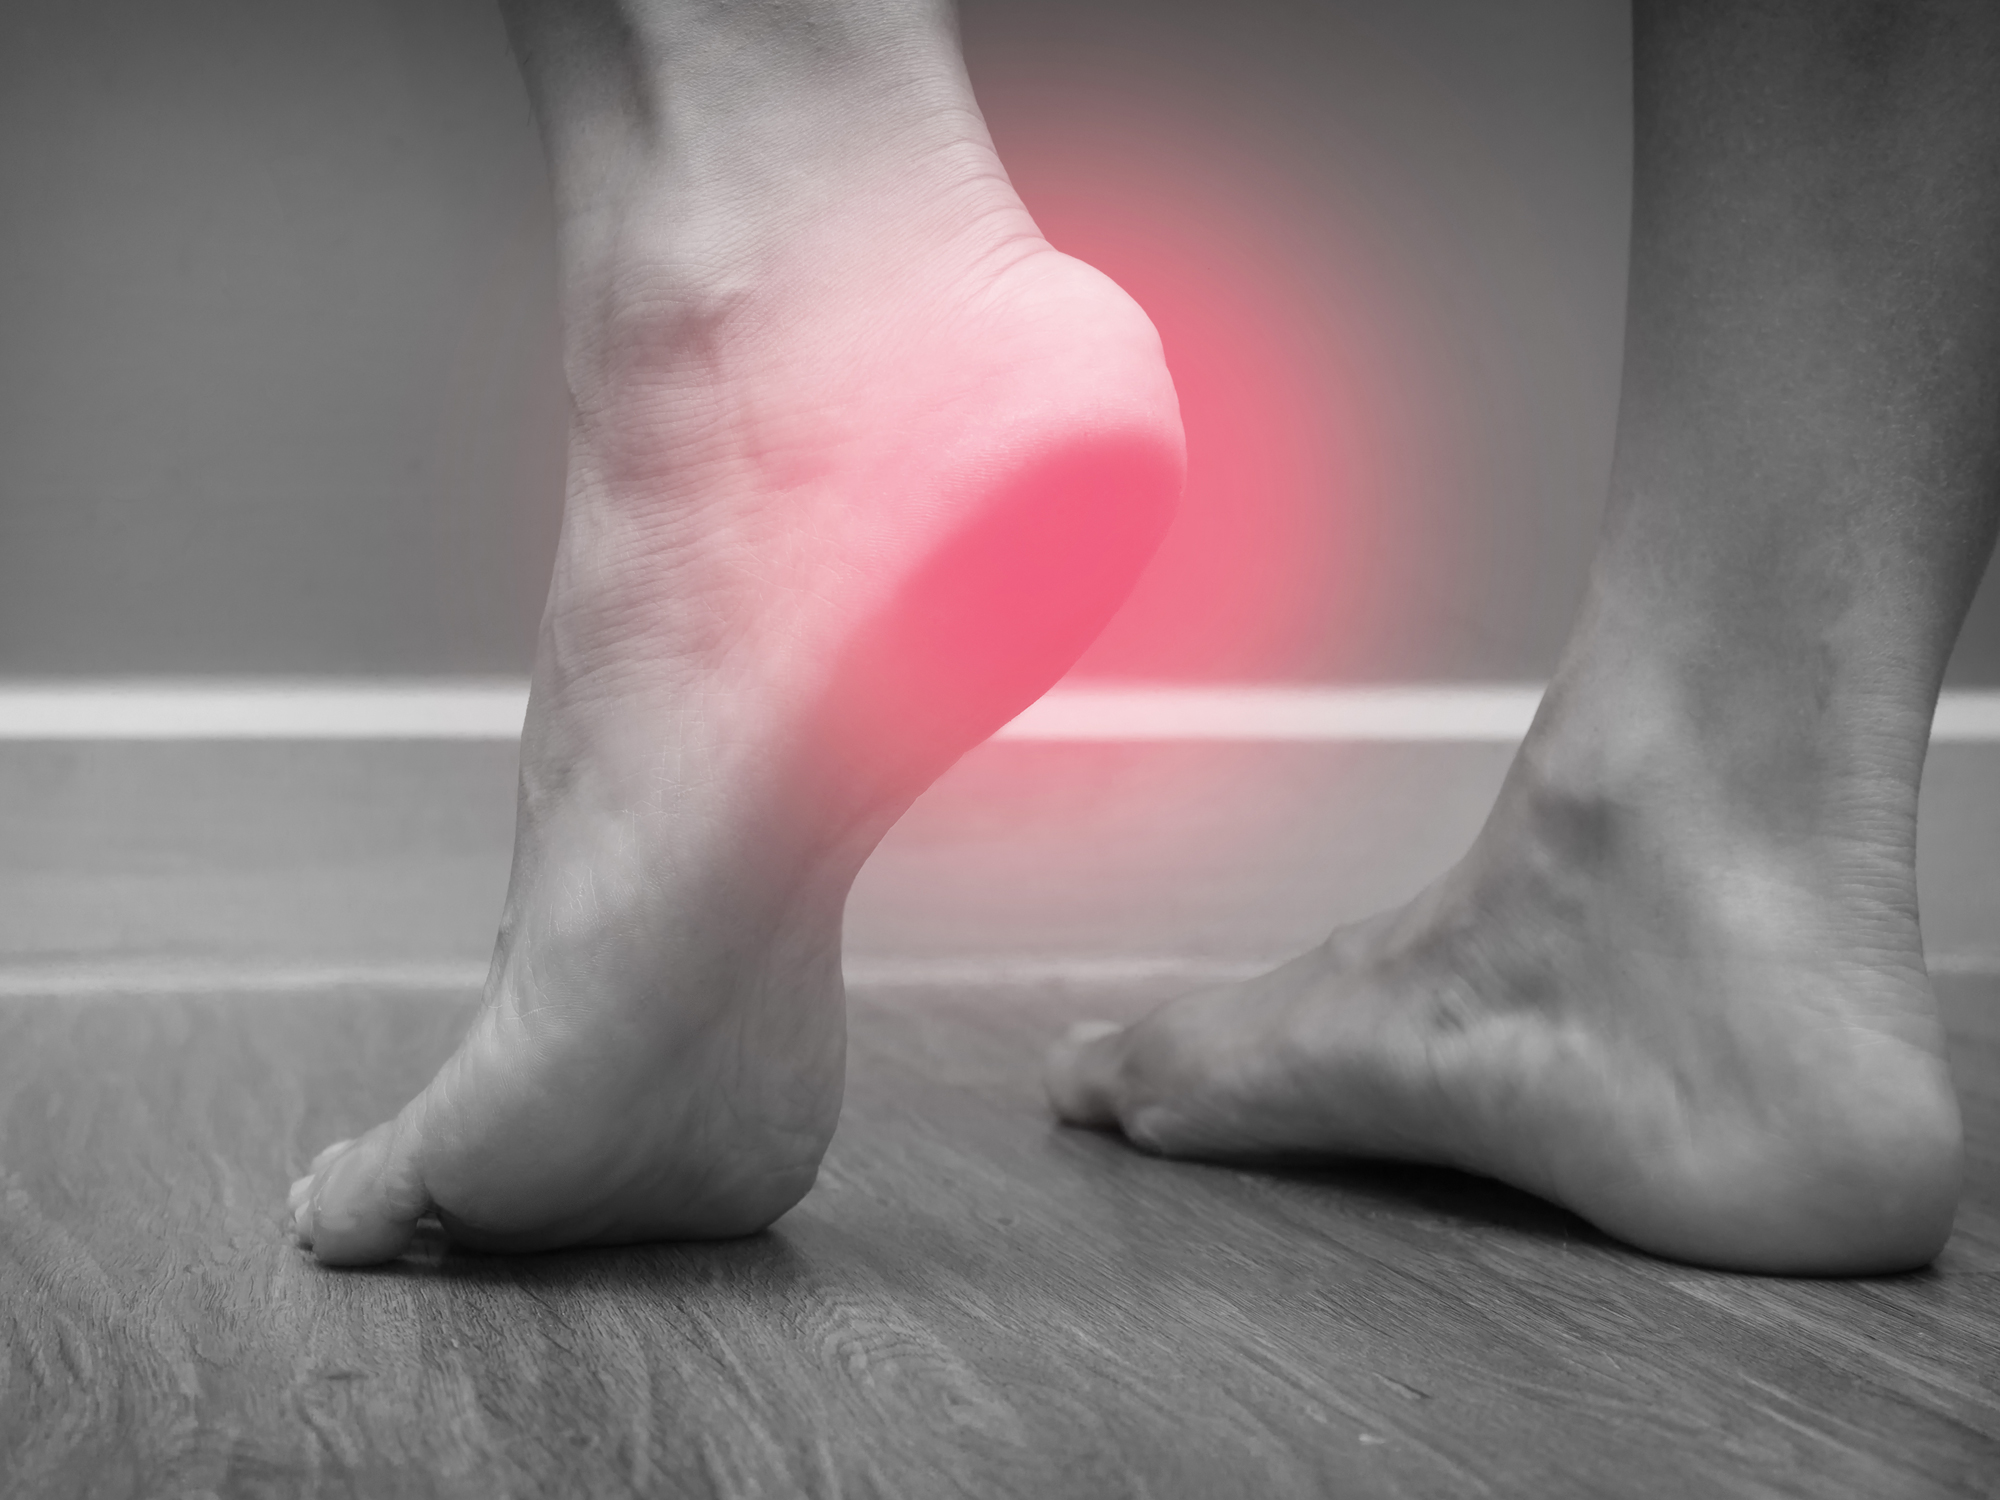 4 Tips To Overcome Plantar Fasciitis And Other Foot Pain